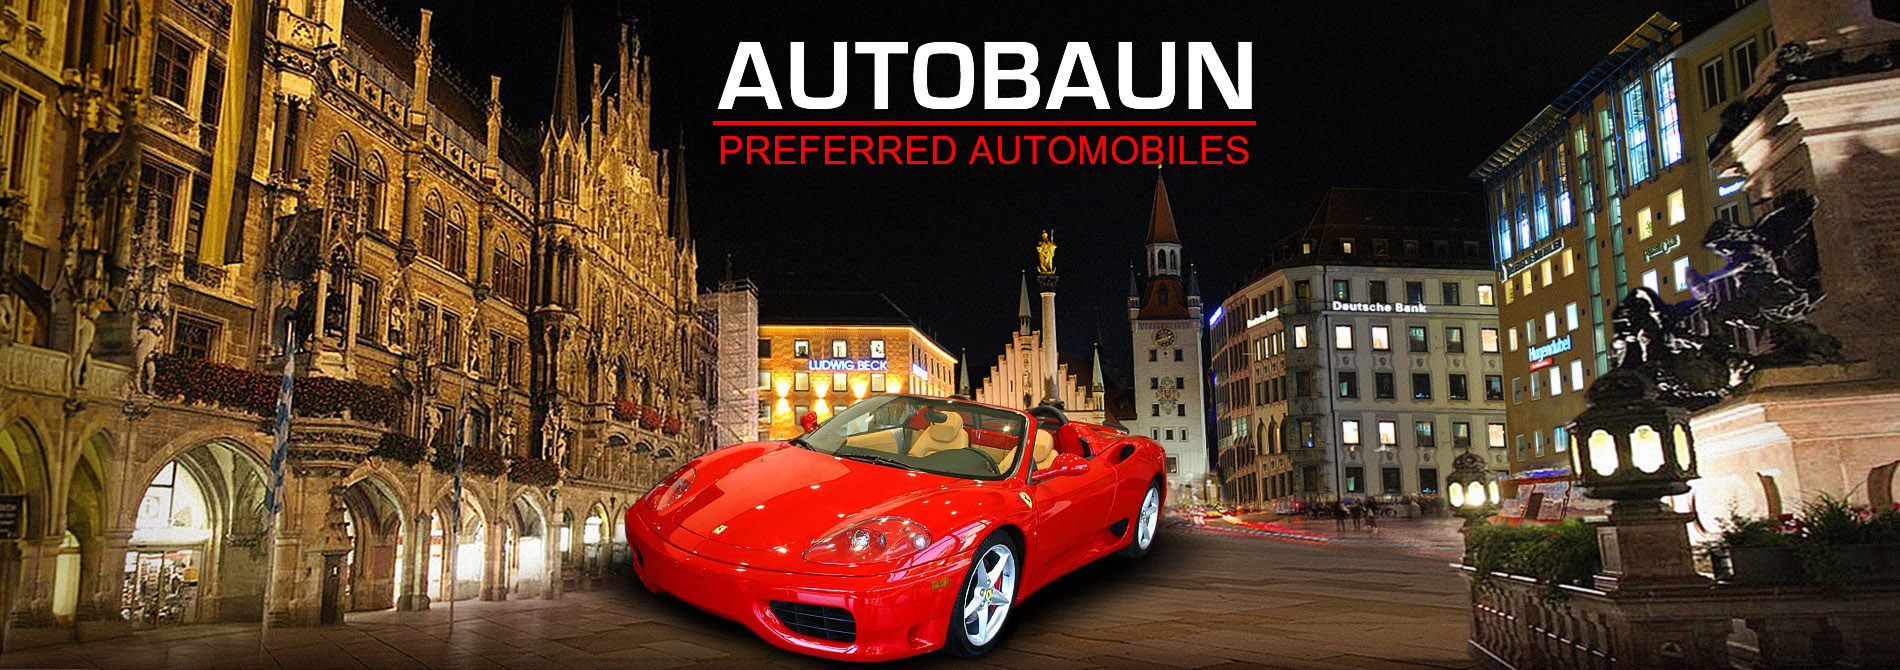 AUTOBAUN | PREFERRED AUTOMOBILES